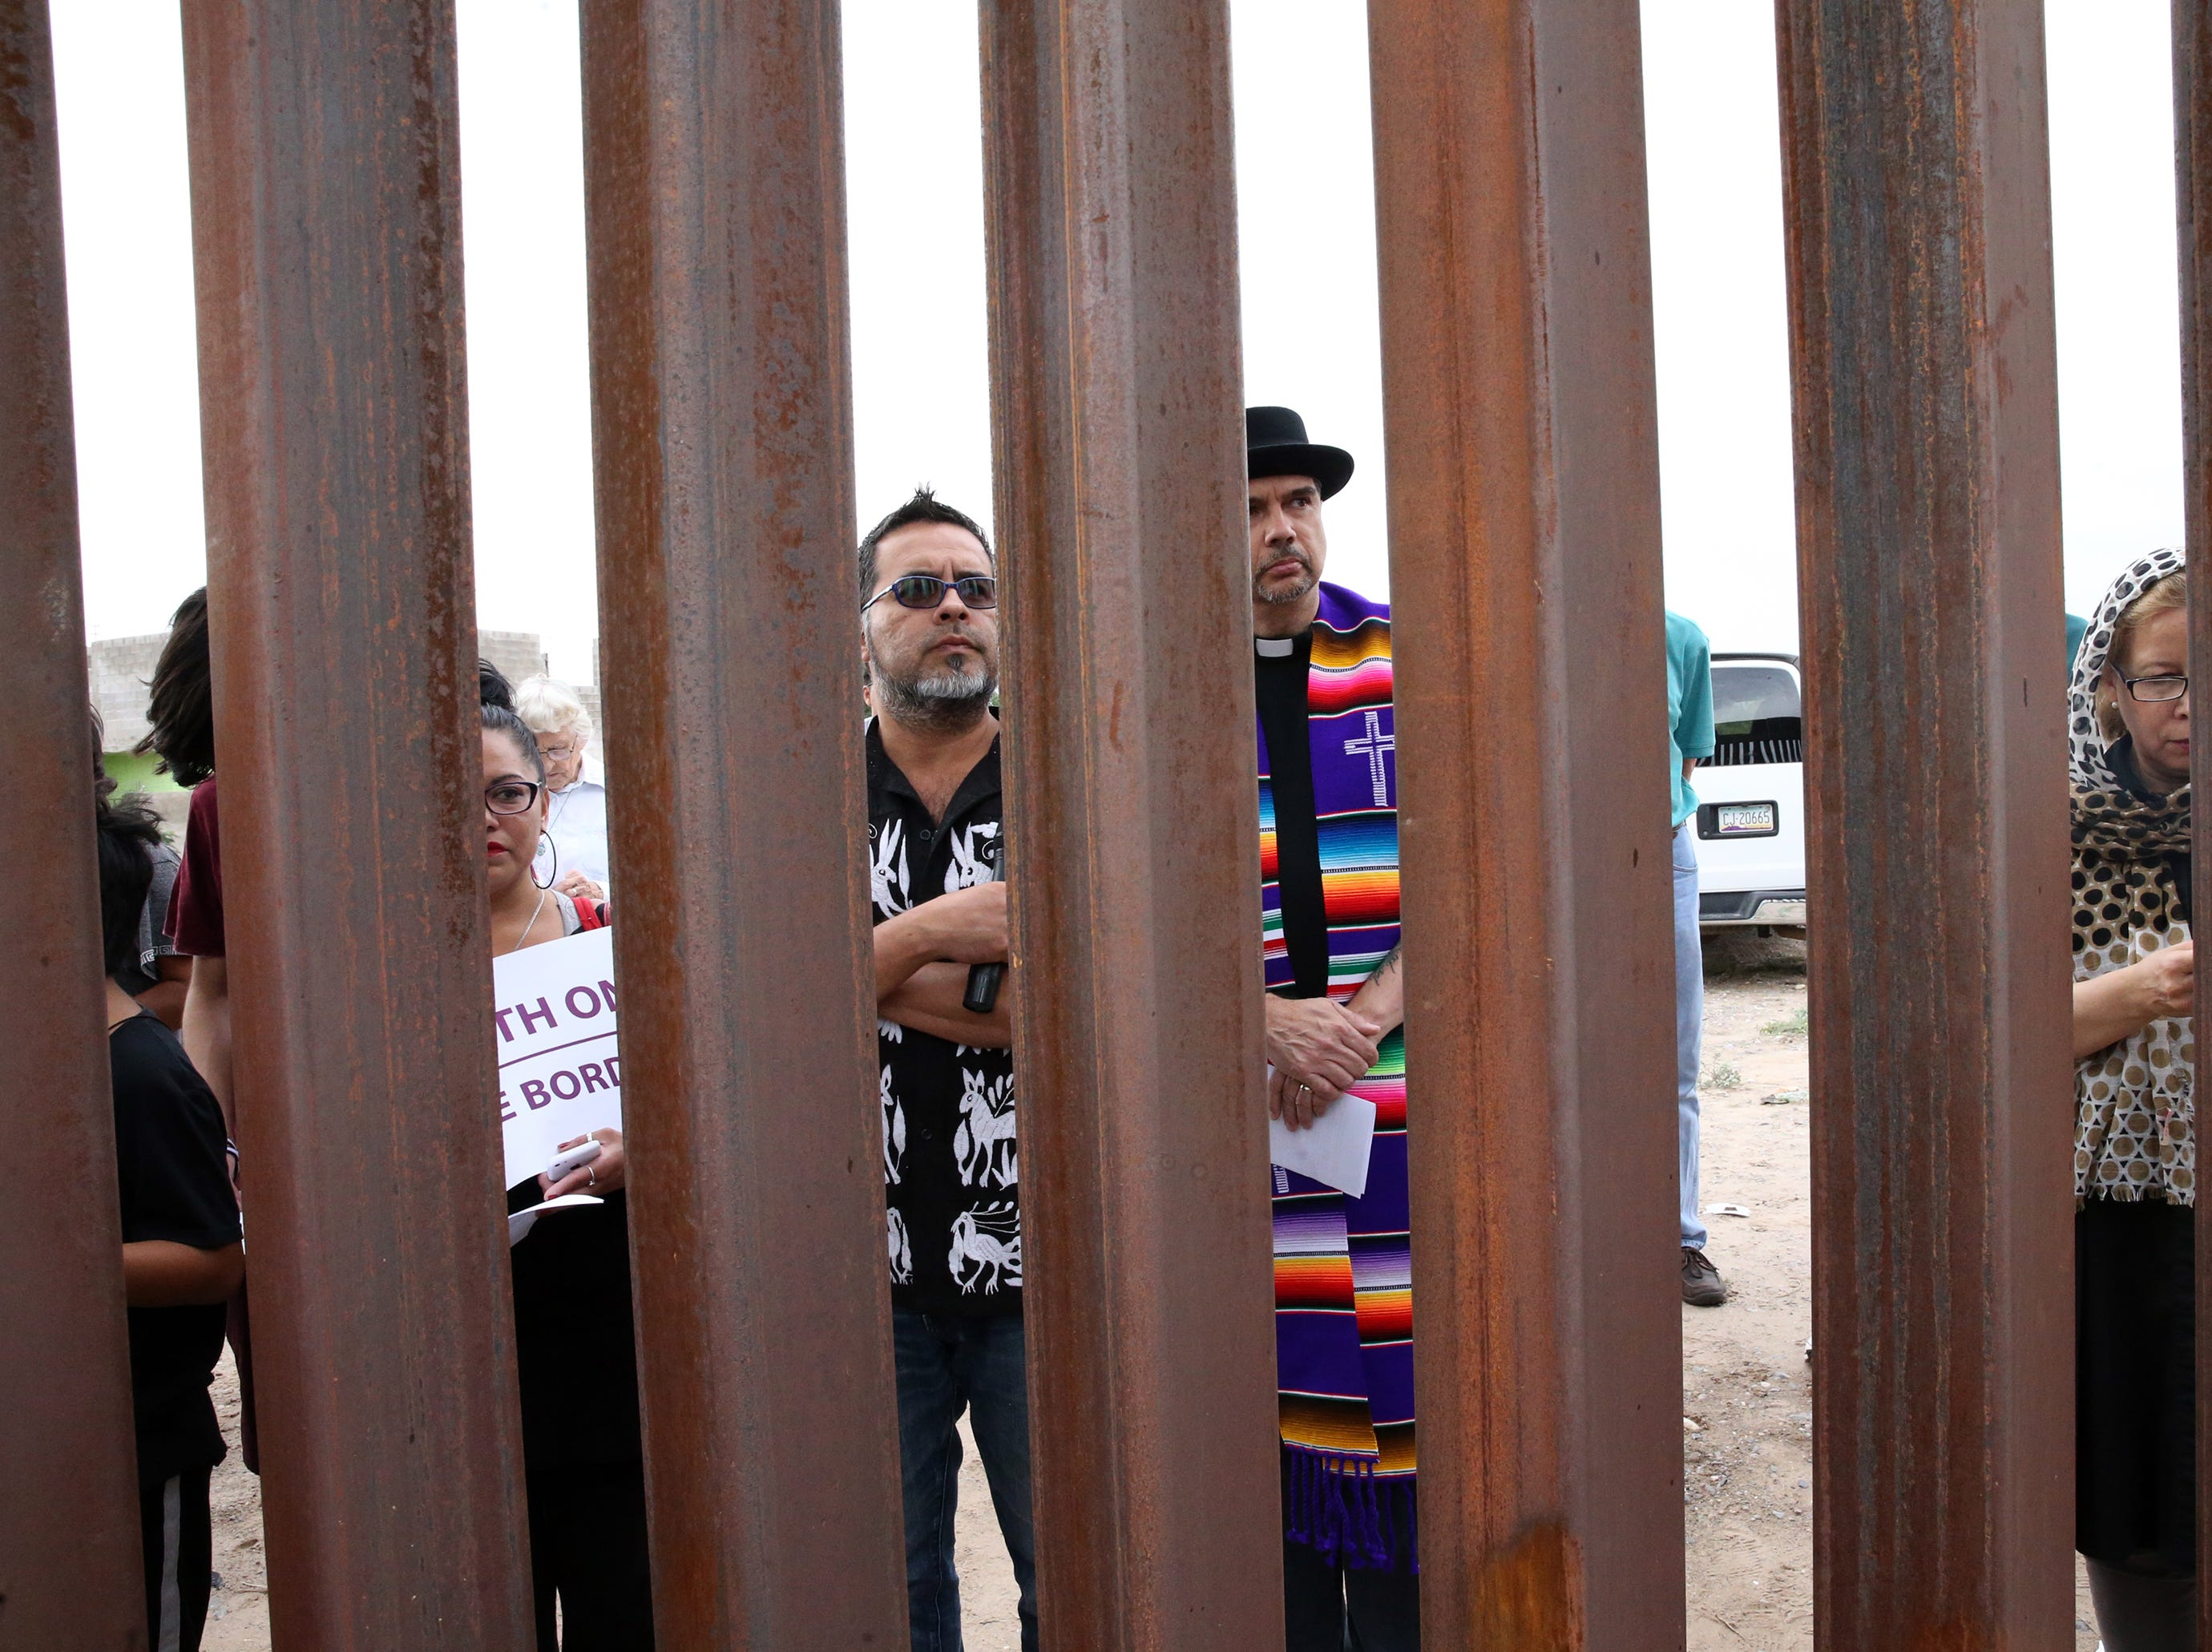 An interfaith group gathered on the Mexican side of the border fence for a prayer vigil Friday.